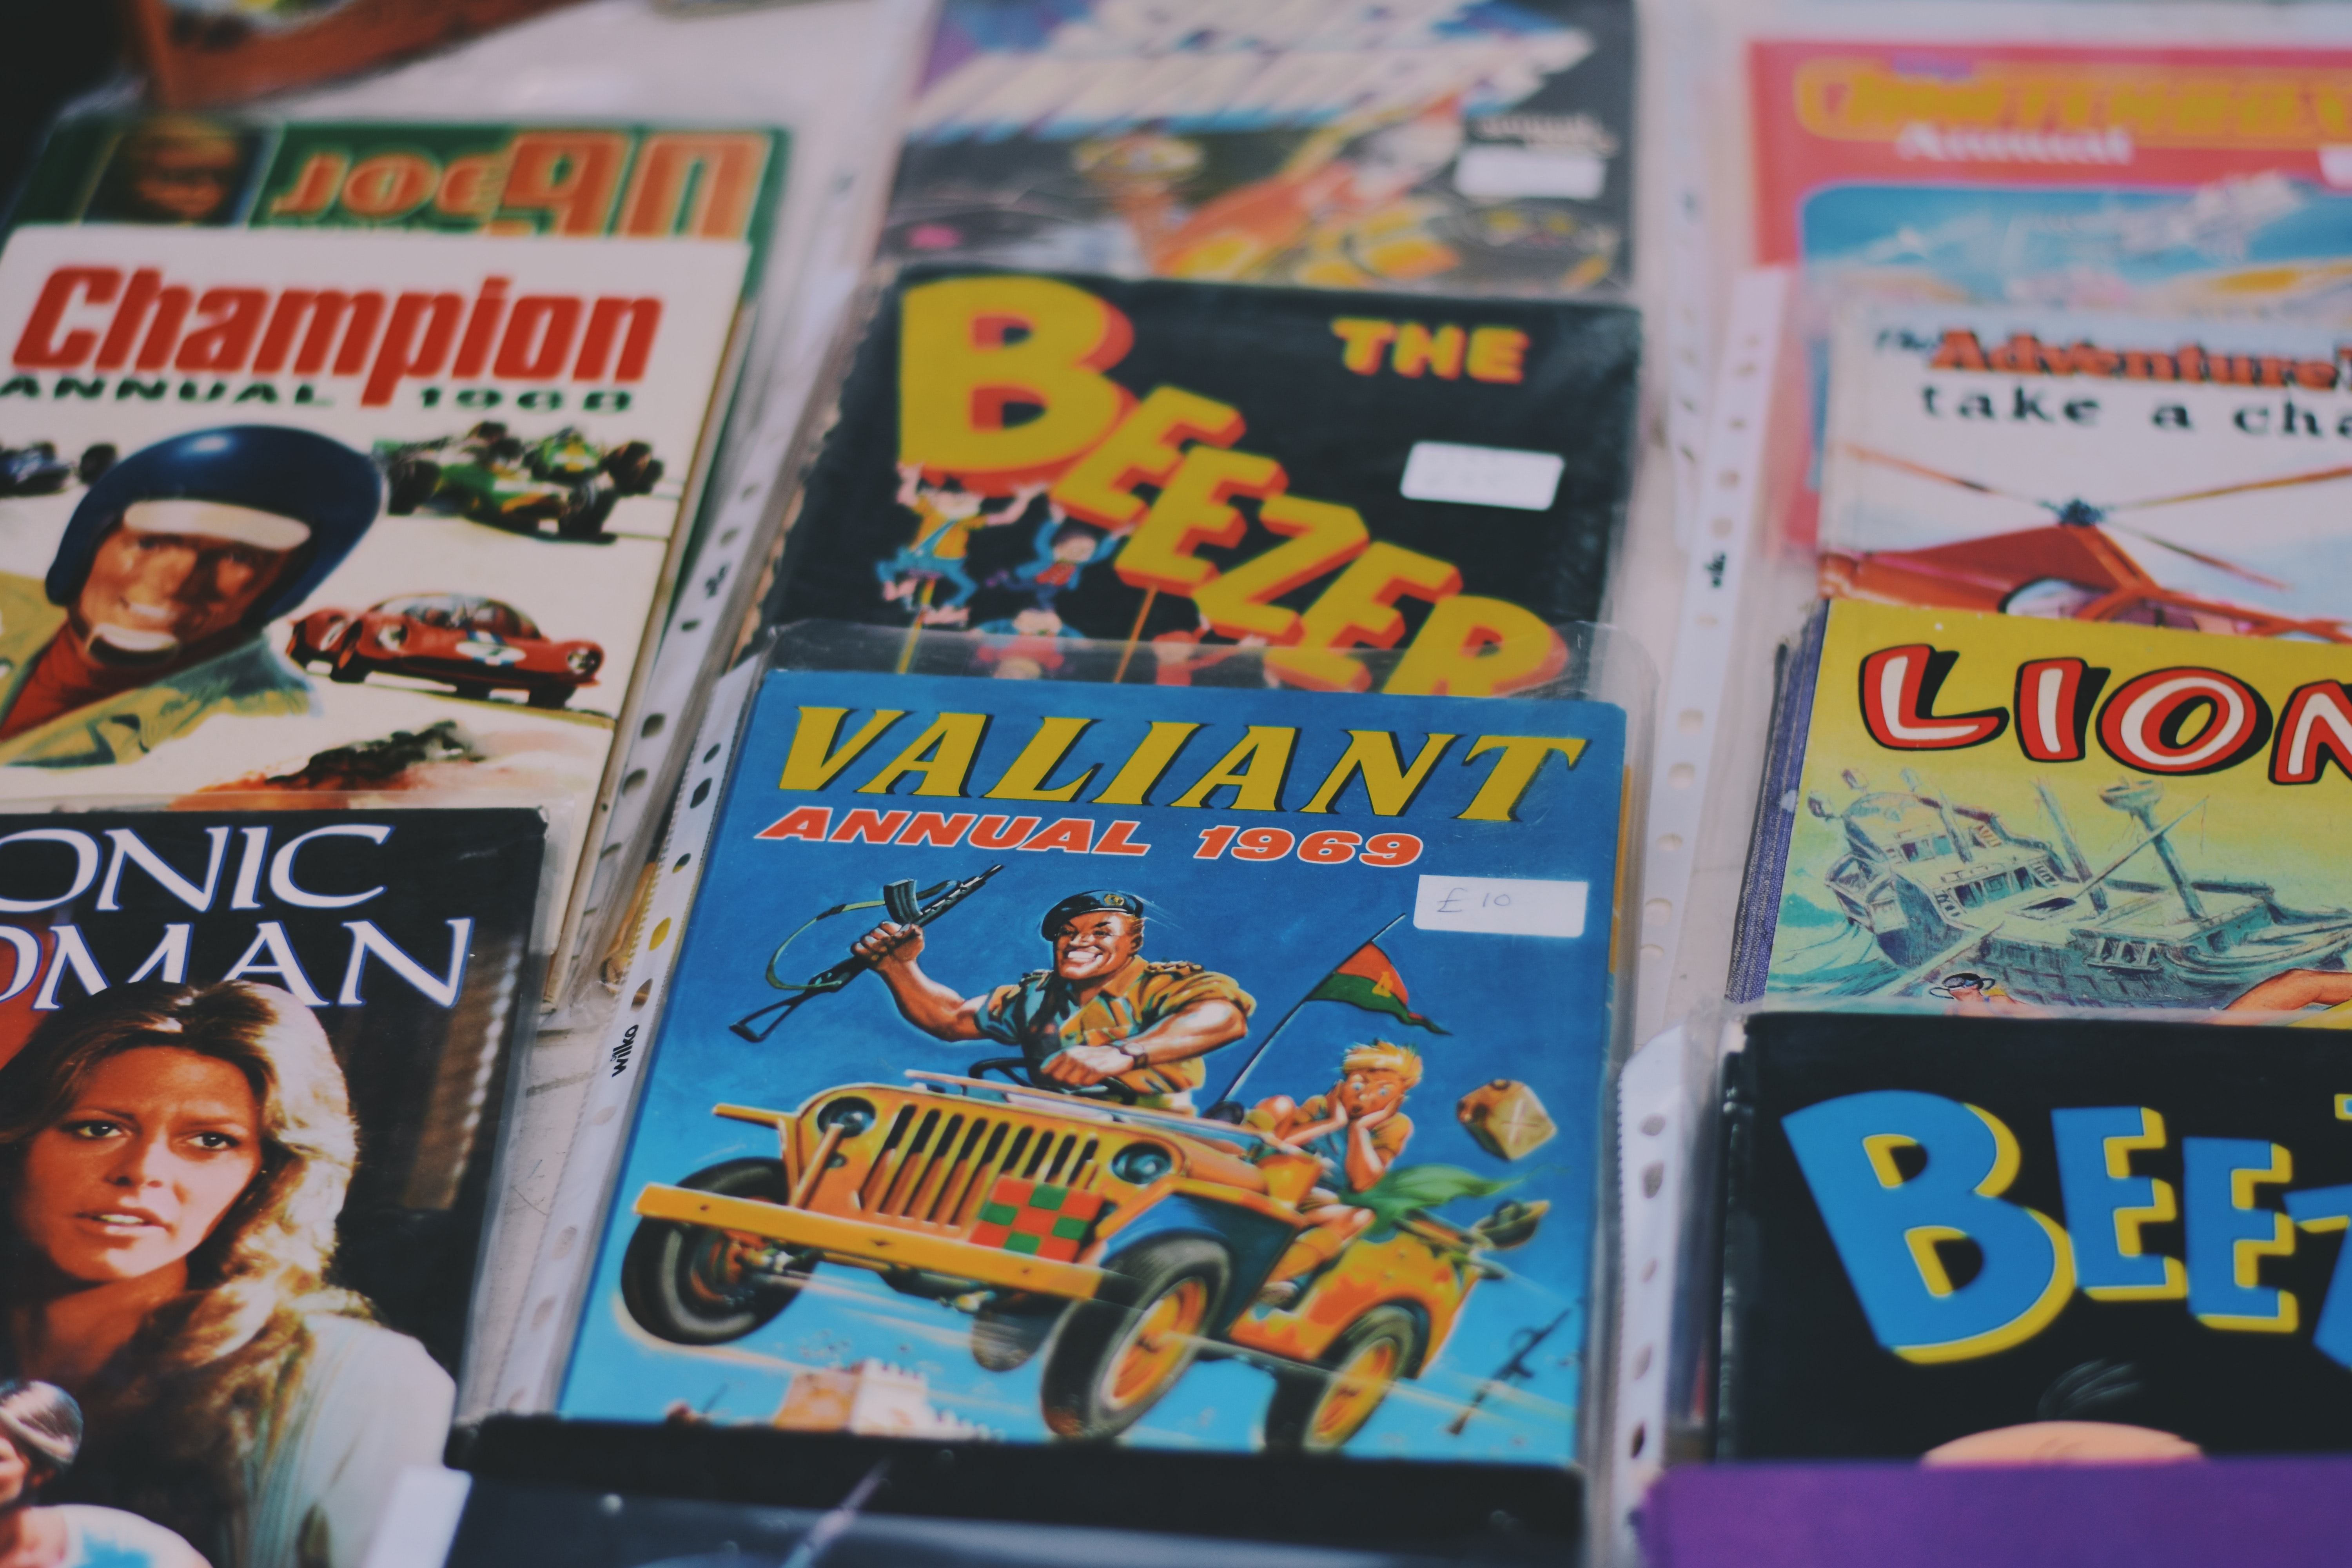 Vintage comic books for sale at a shop